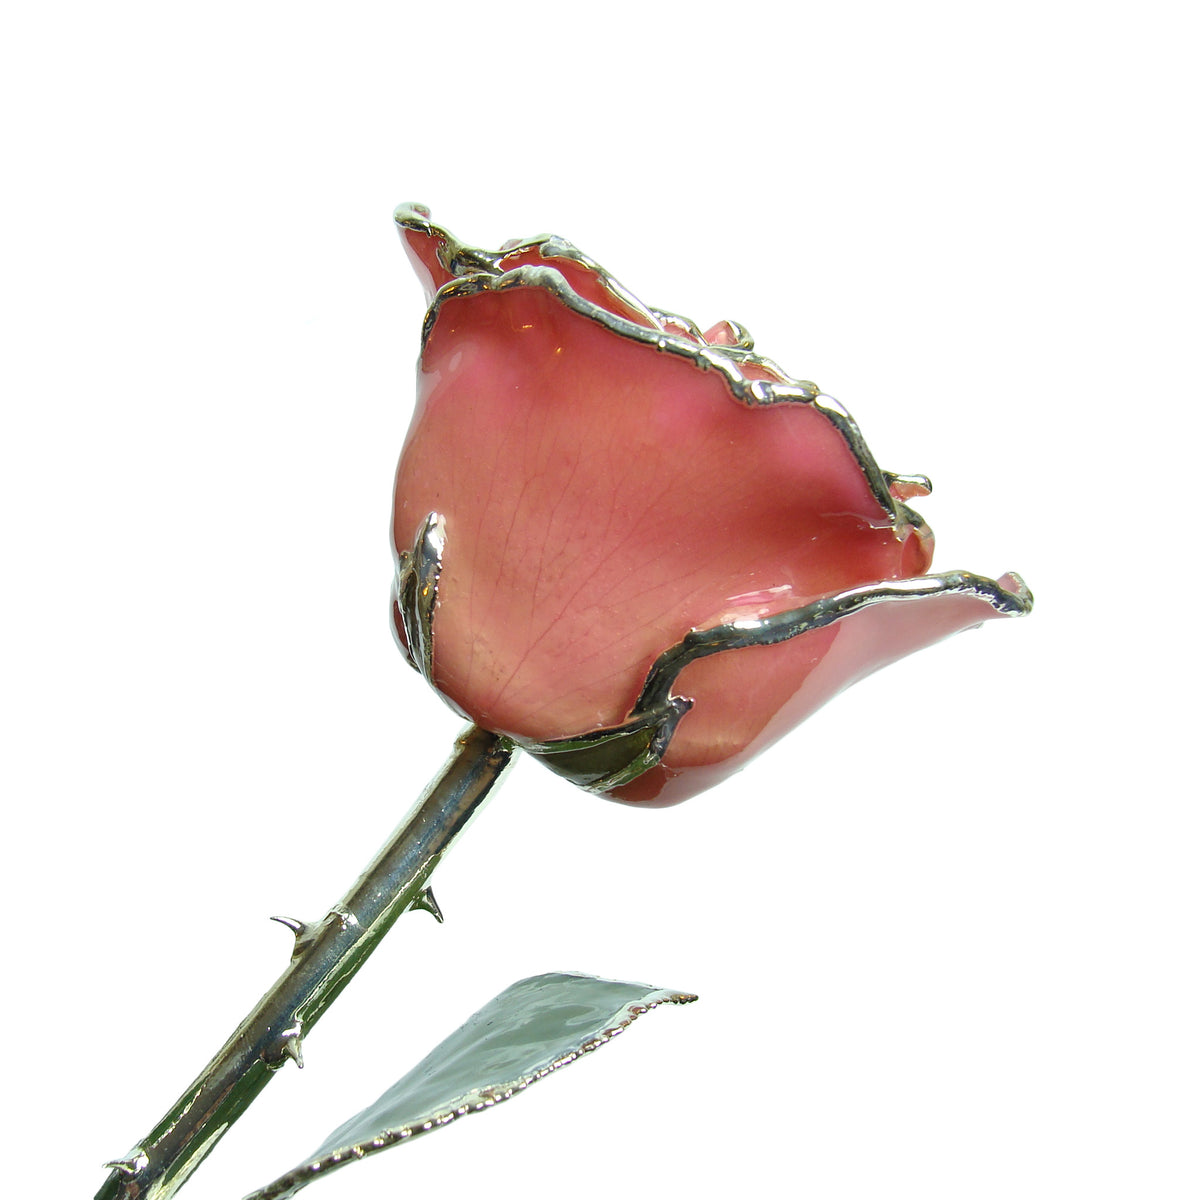 Silver Trimmed Forever Rose with Pink Petals. View of Stem, Leaves, and Rose Petals and Showing Detail of Silver Trim